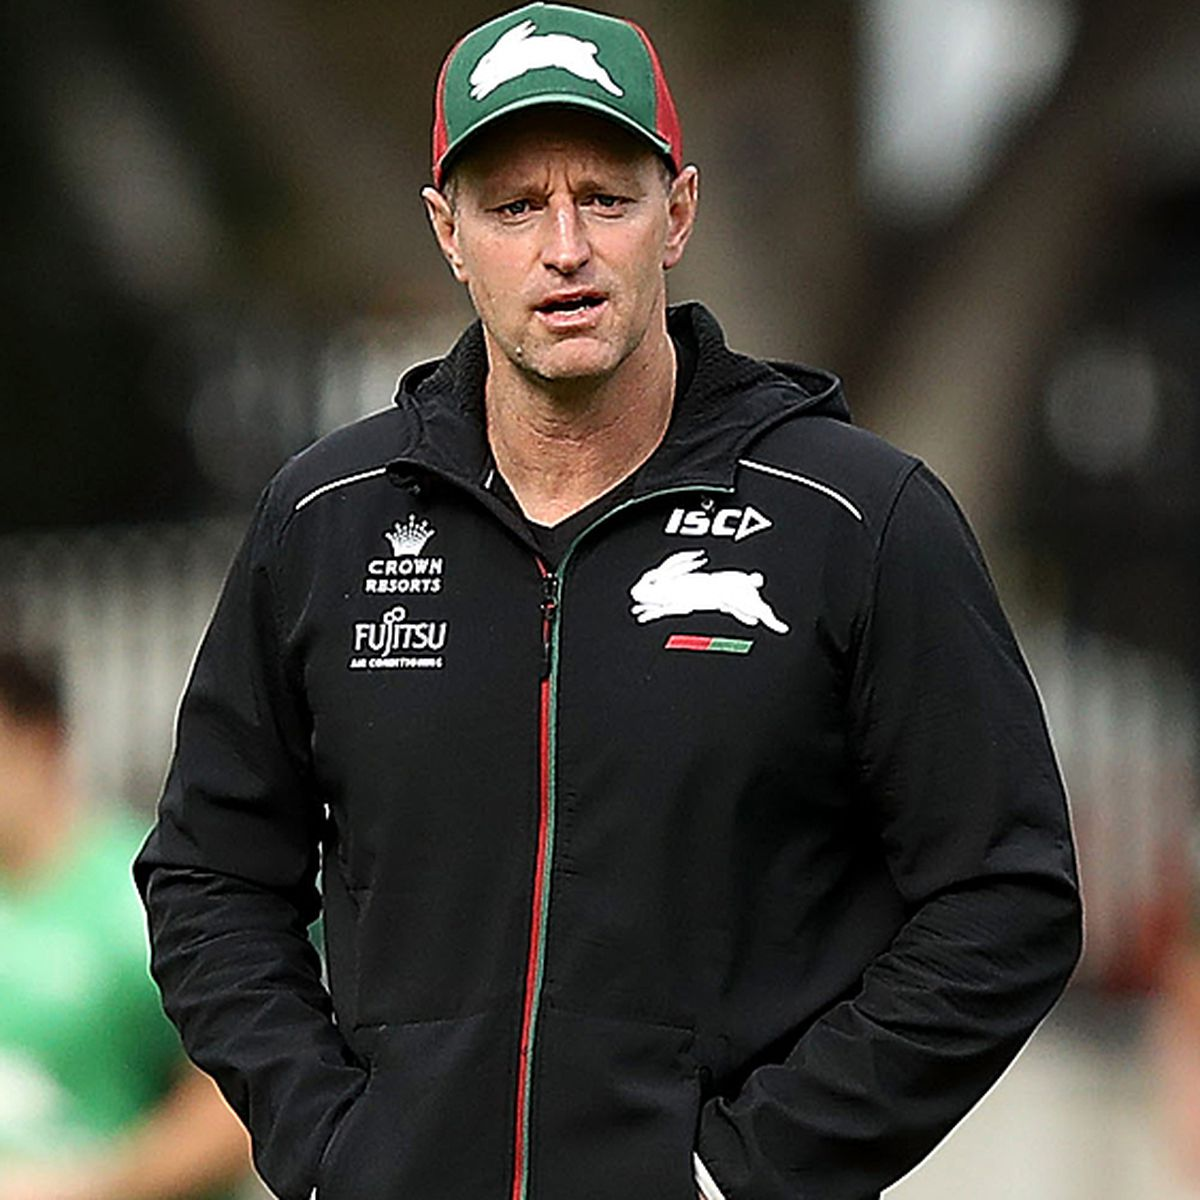 Nrl South Sydney Rabbitohs Fire Head Coach Michael Maguire